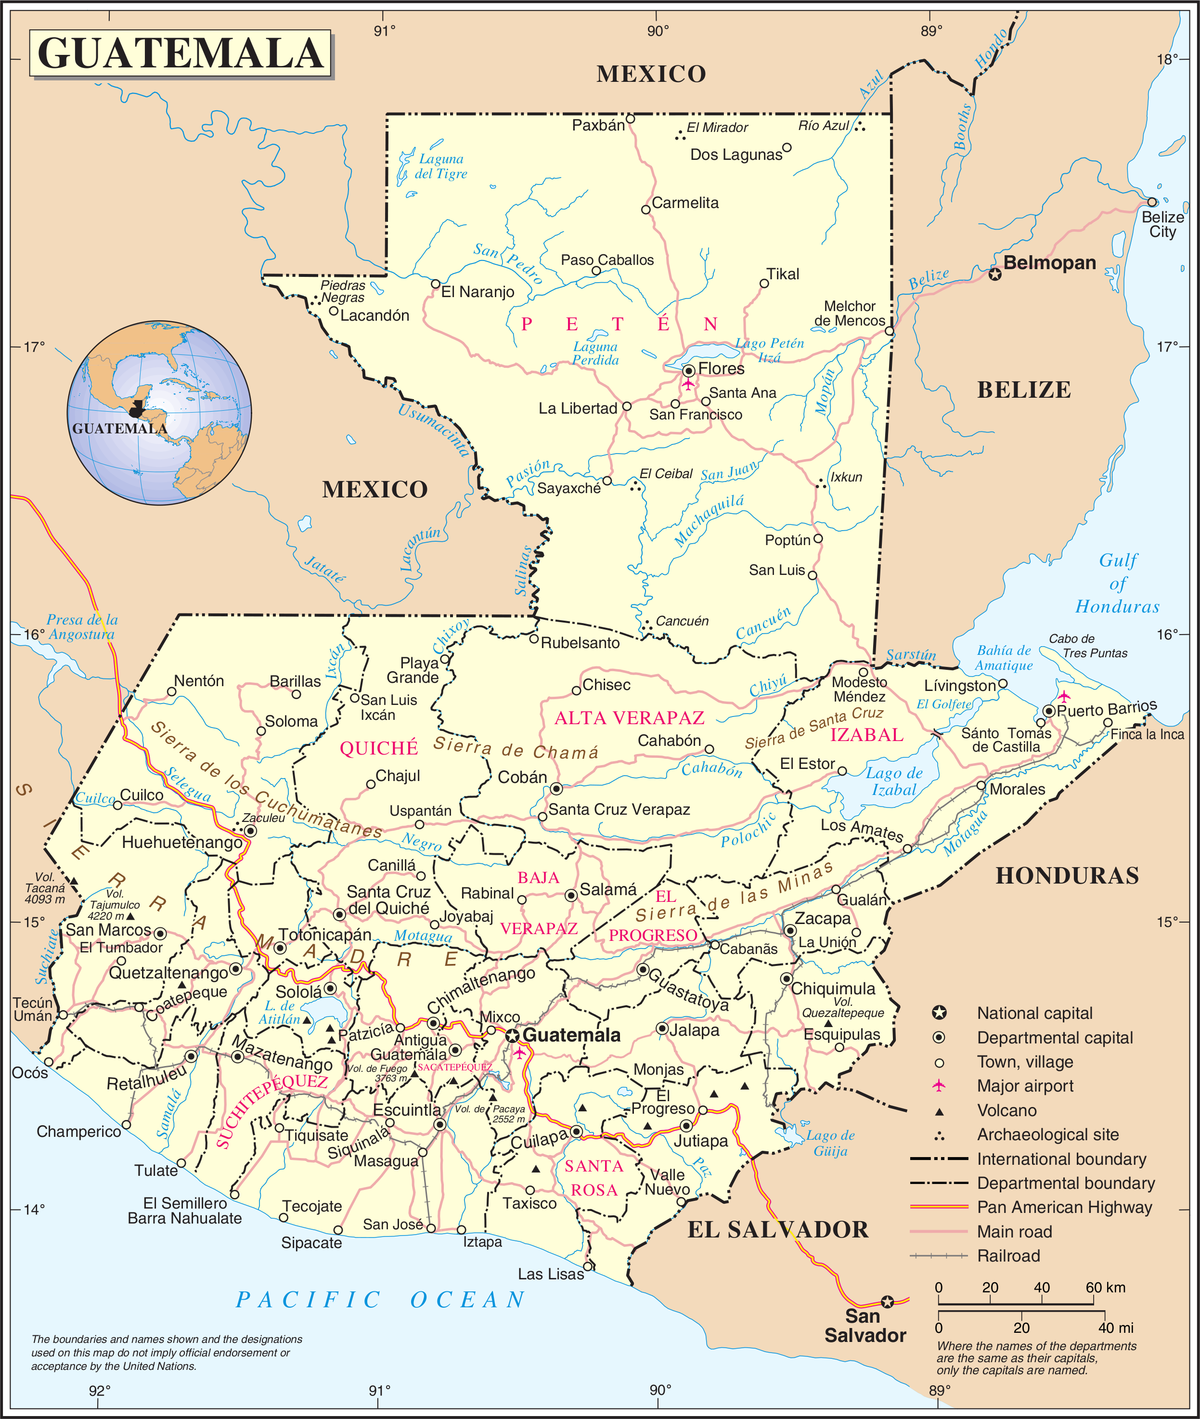 List Of Places In Guatemala Wikipedia - Departments map of guatemala